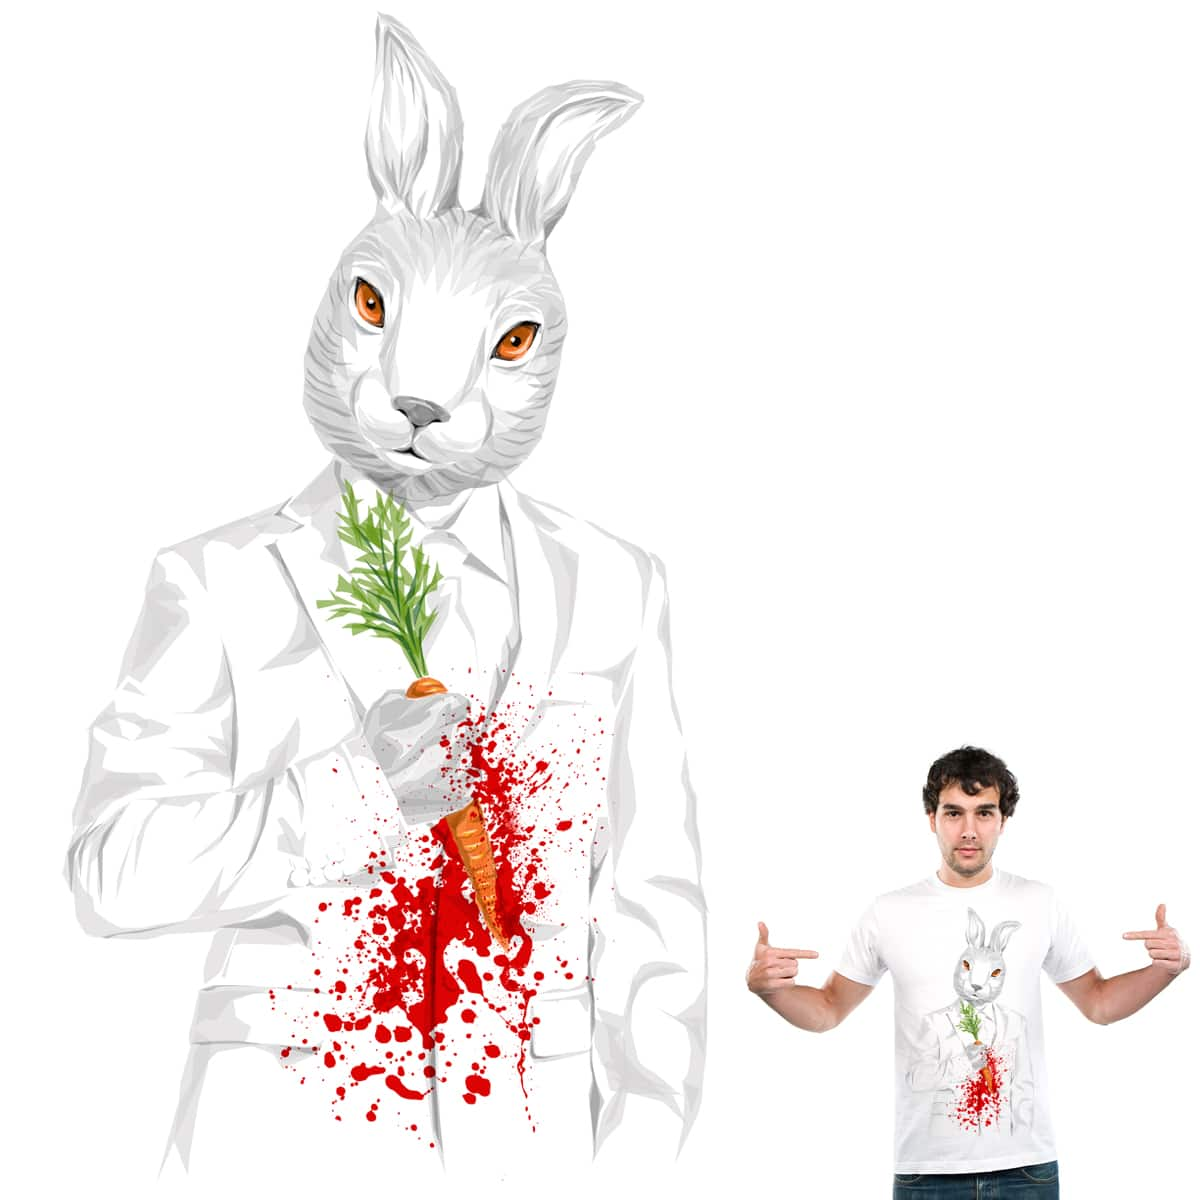 Blood Stain by Joe Conde and goliath72 on Threadless